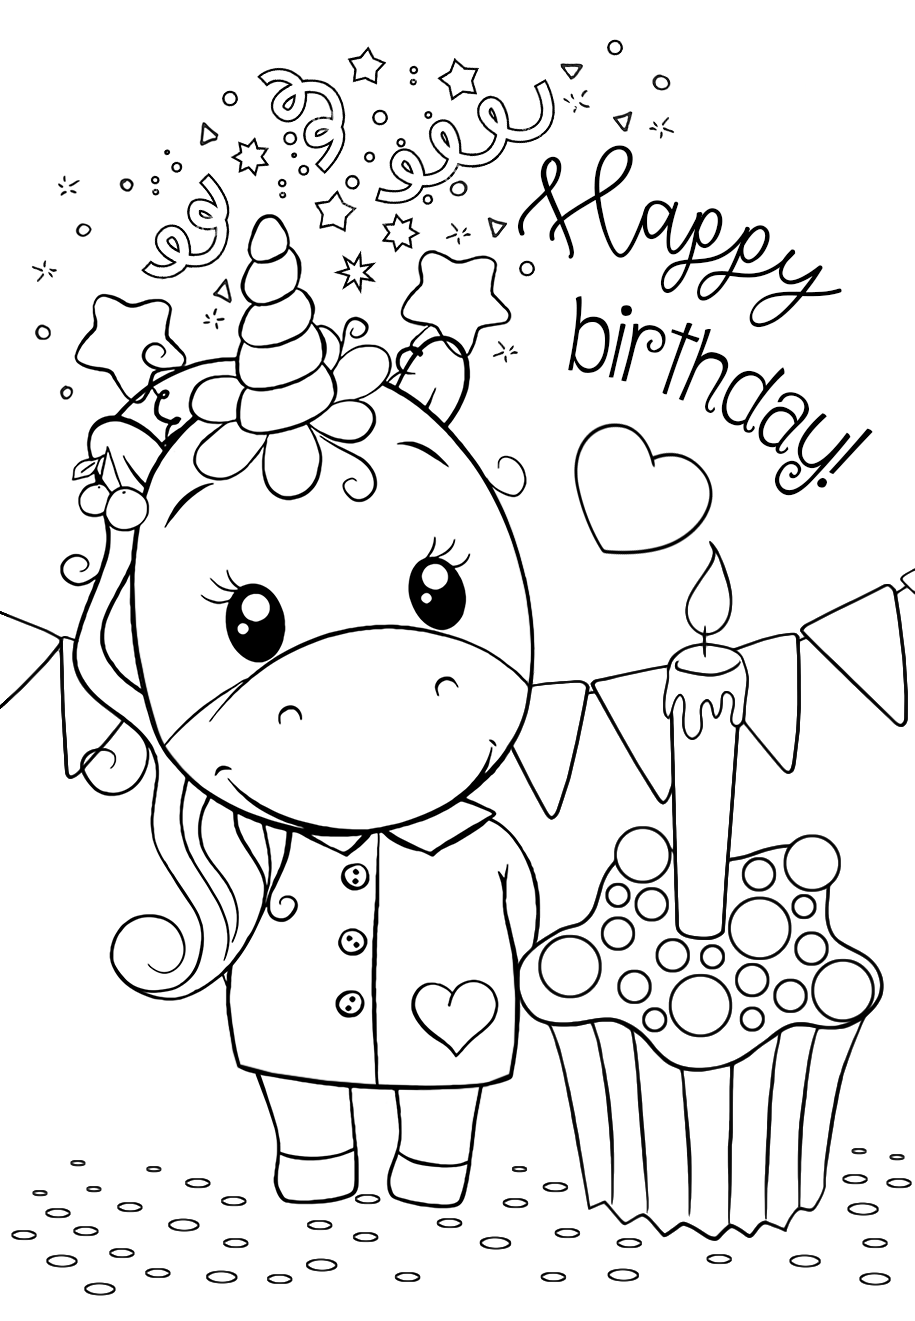 disney happy birthday coloring pages free hello kitty happy birthday coloring pages disney disney happy pages birthday coloring